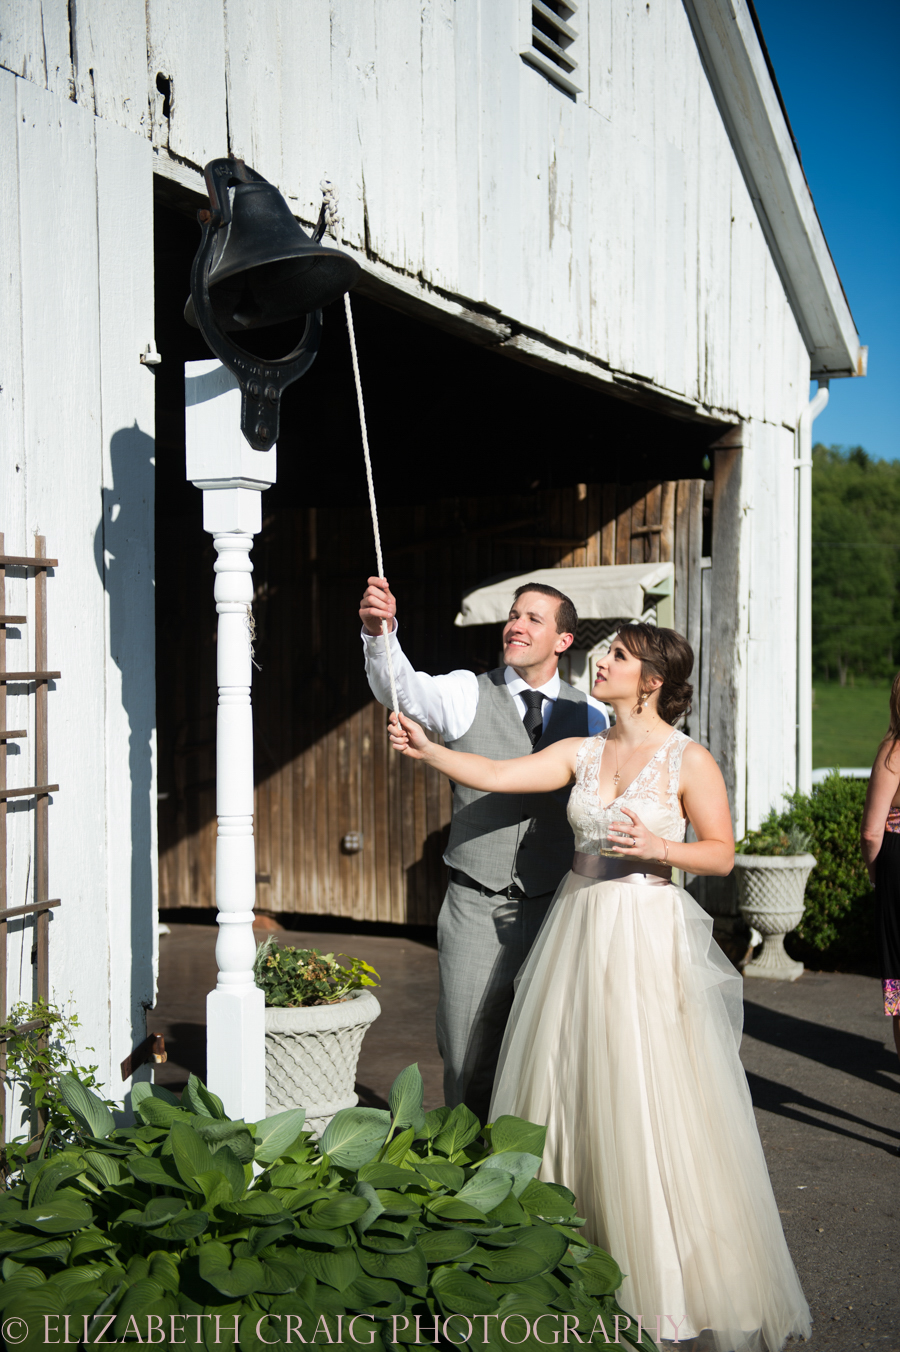 Shady Elms Farm Weddings and Receptions Elizabeth Craig Photography-0130